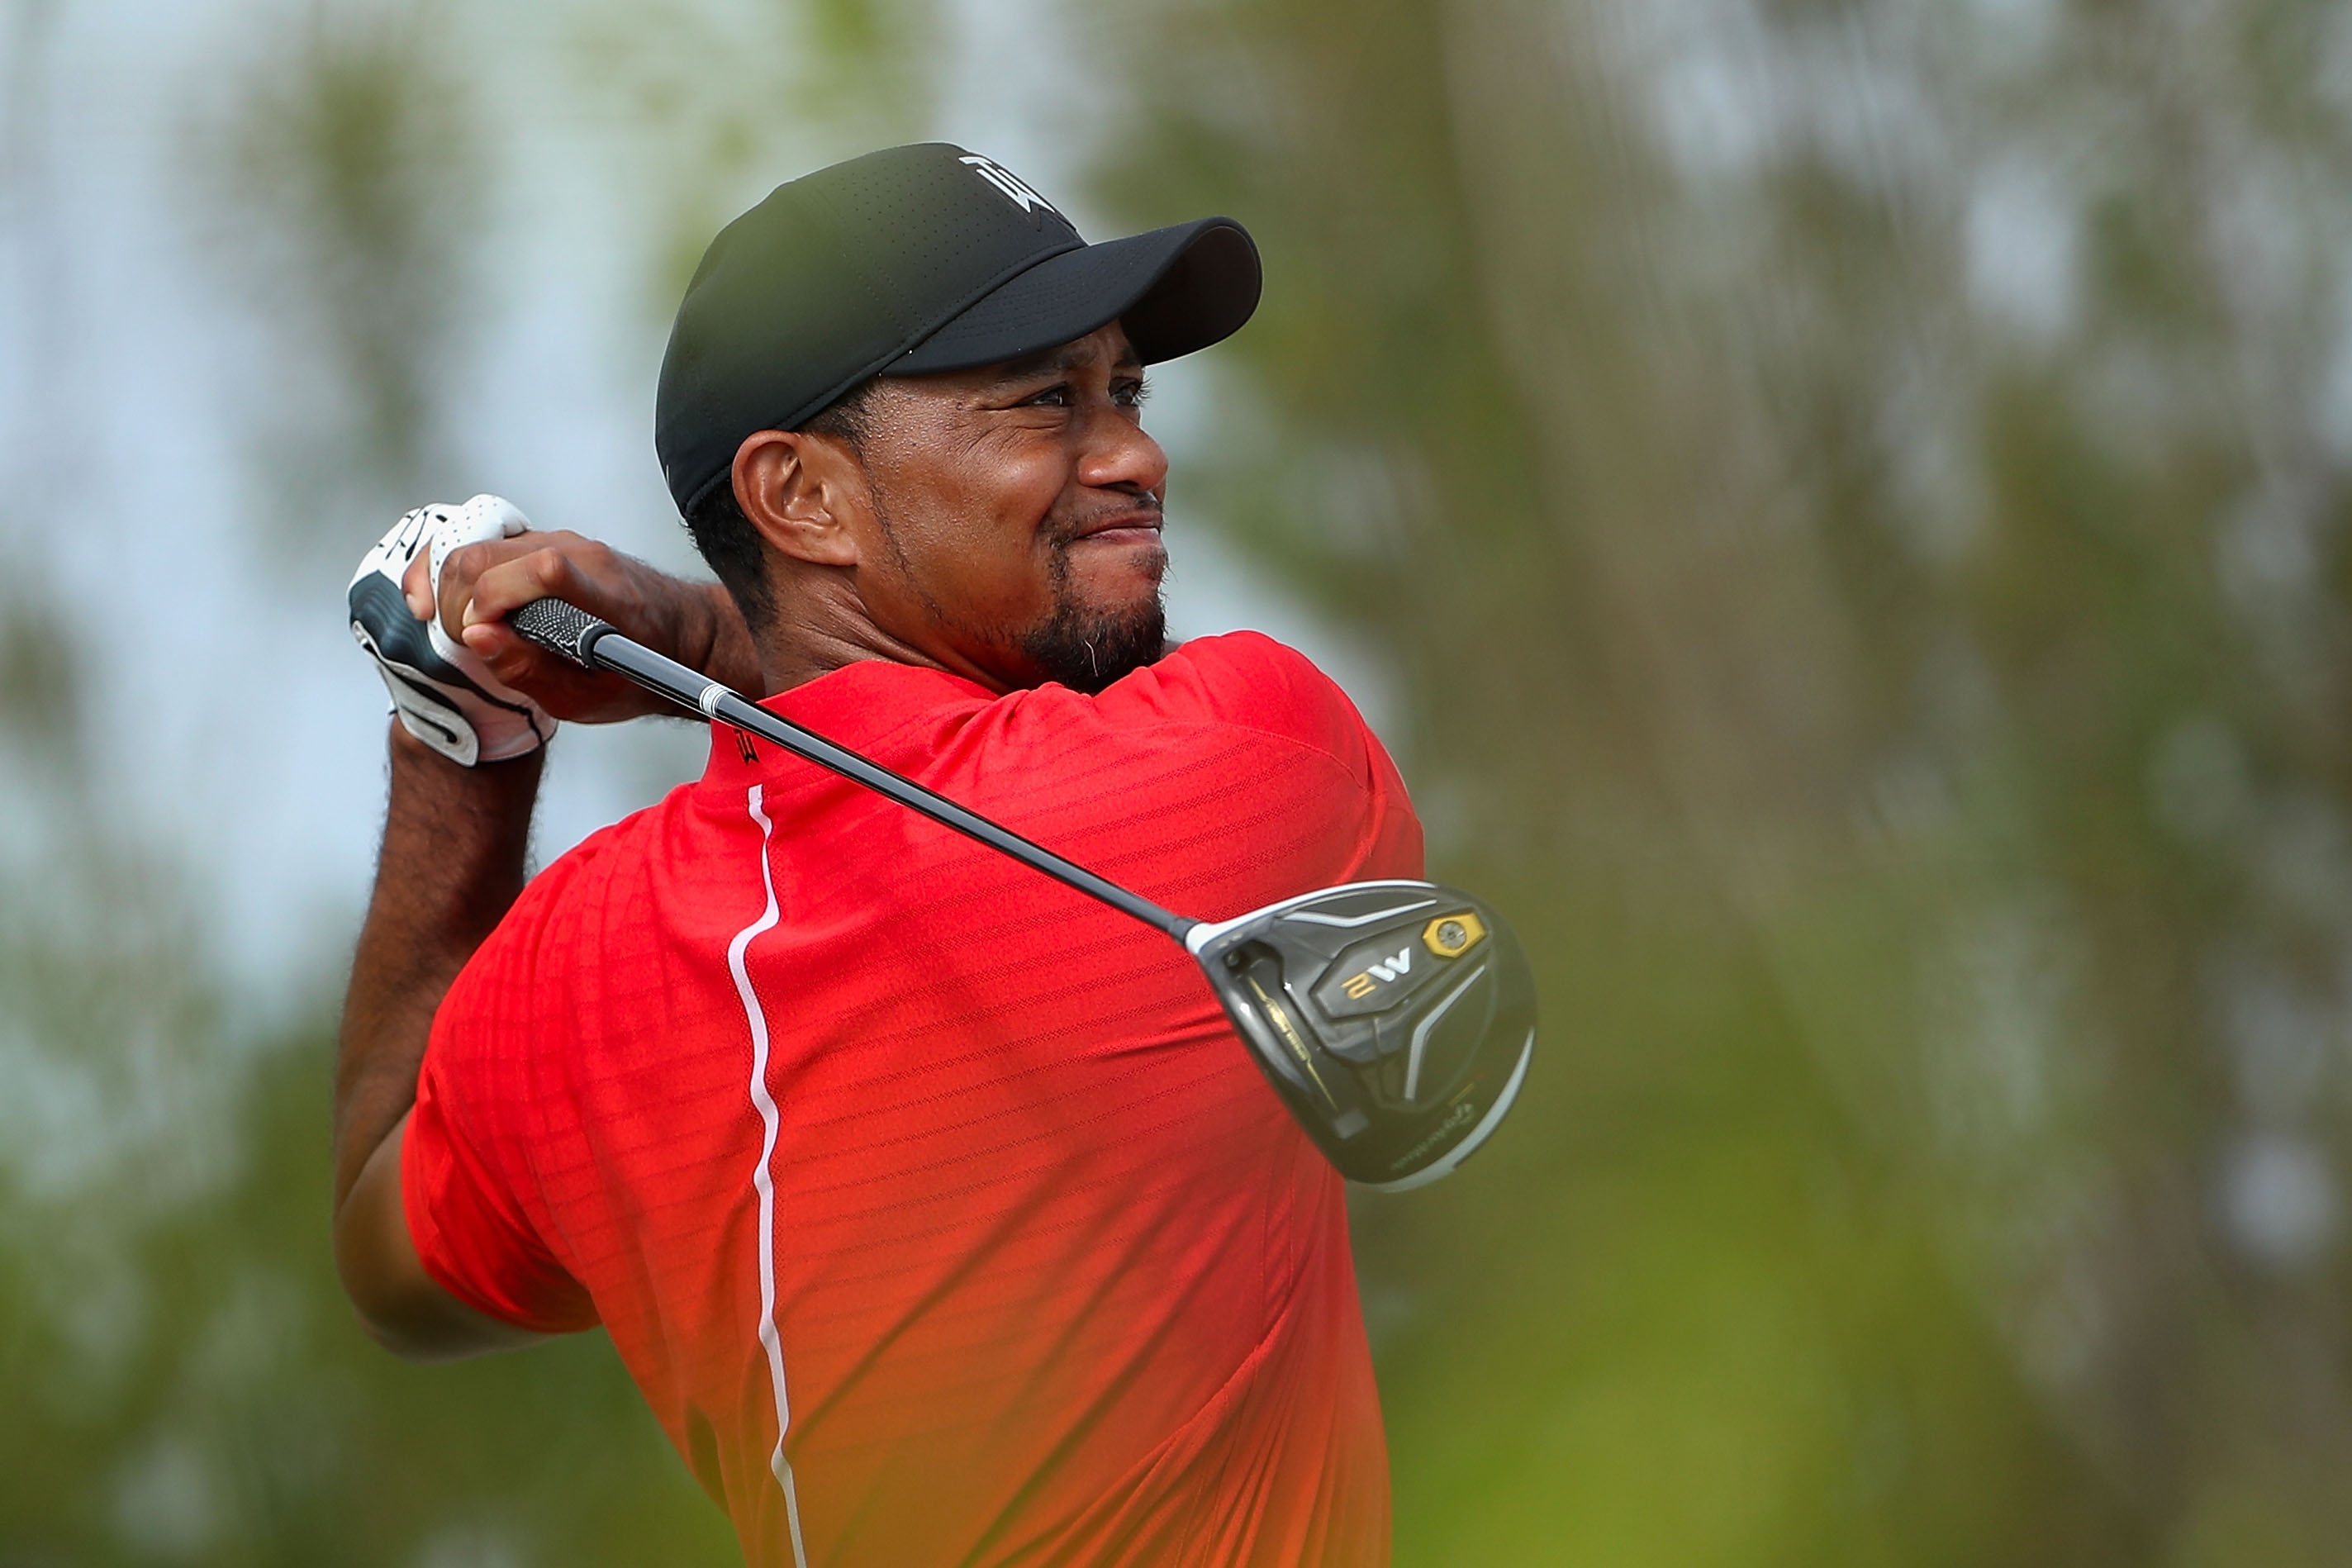 Woods golf comeback confirmed for Bahamas